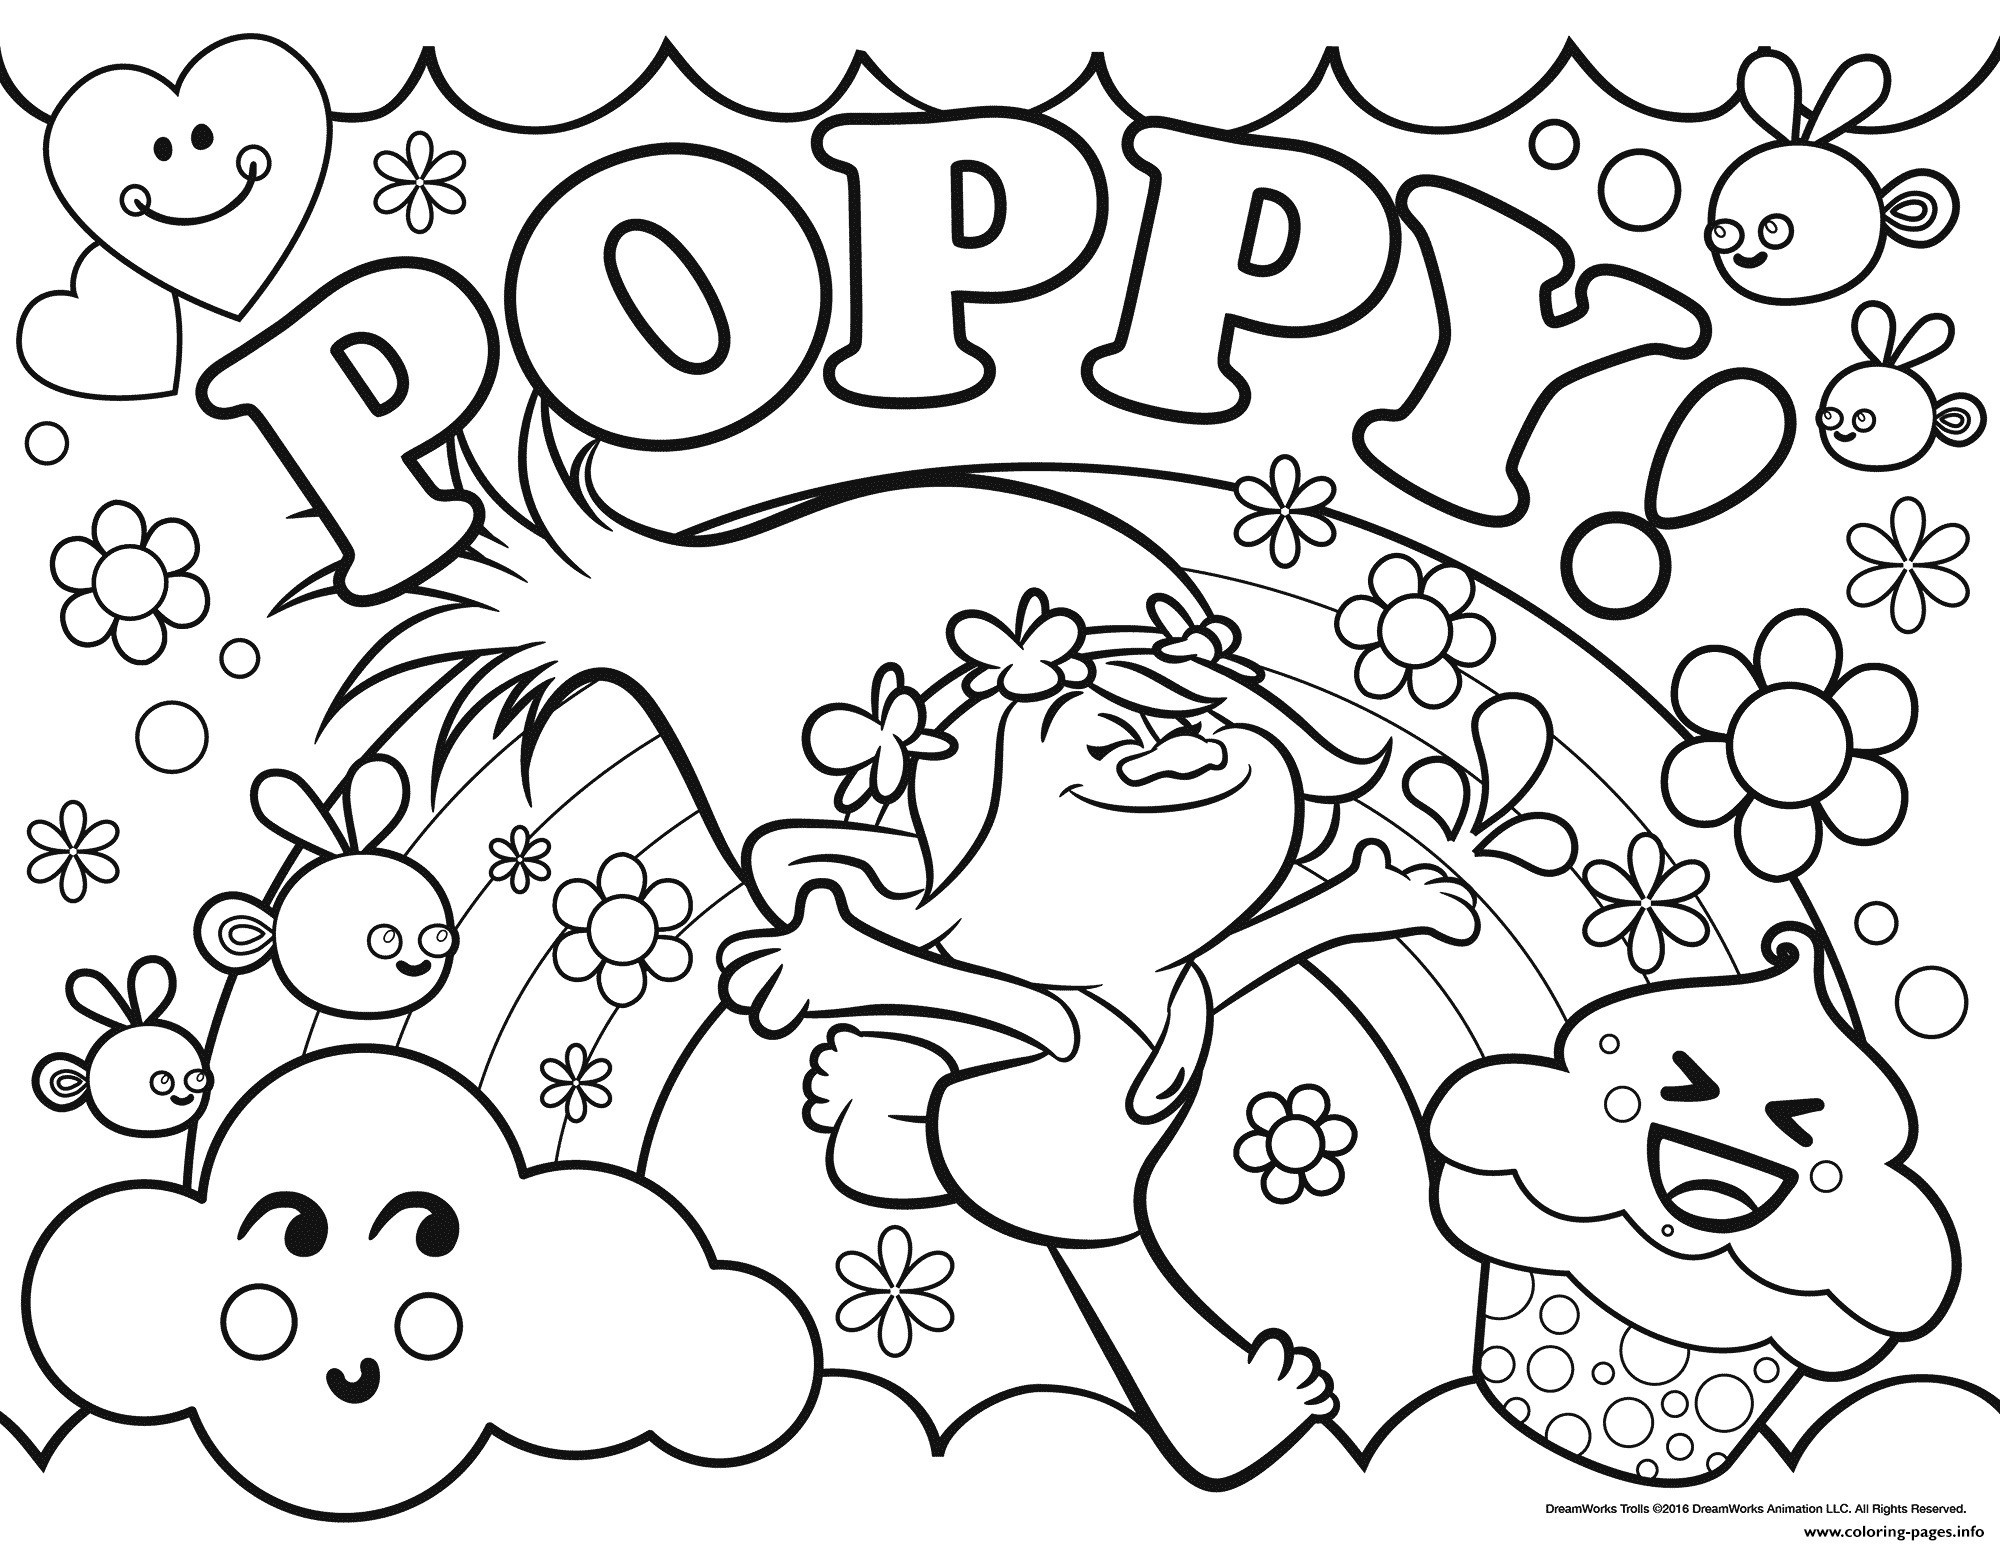 trolls-colouring-in-pages-printable-of-trolls-colouring-in-pages-printable Trolls Colouring In Pages Printable Cartoon